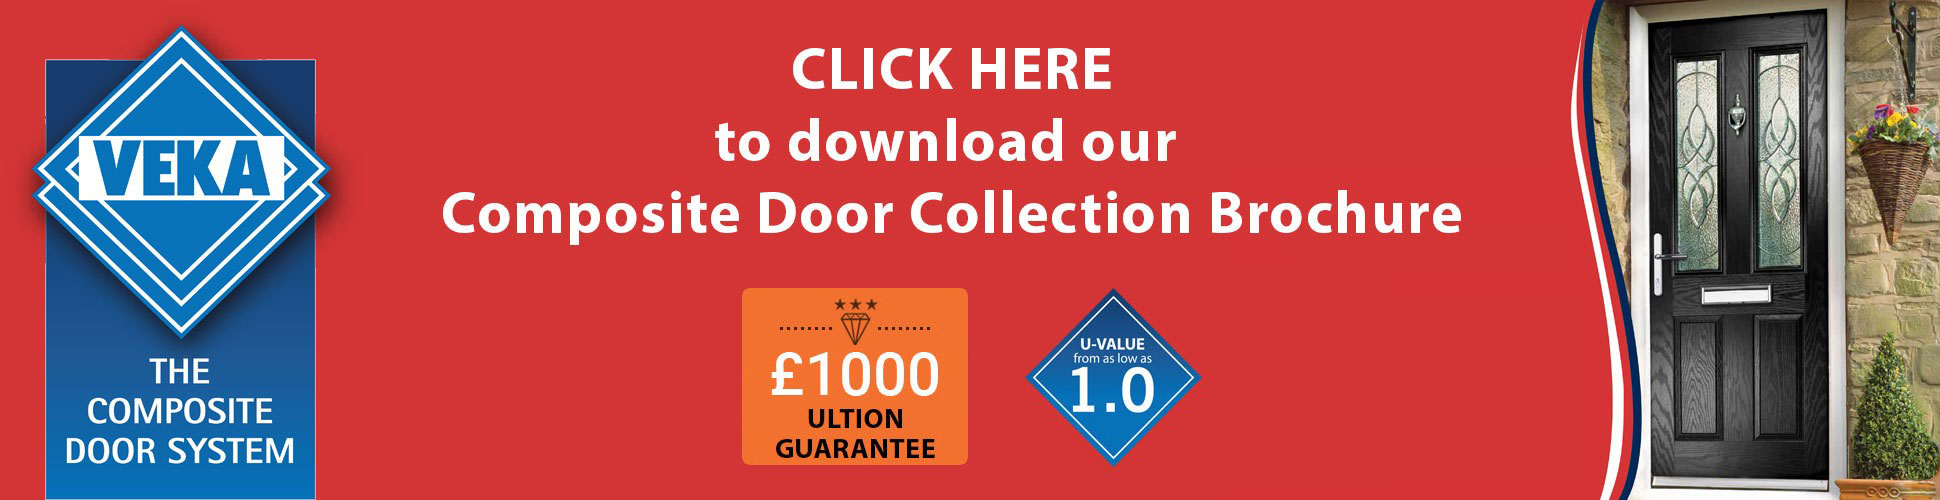 High Quality Composite Doors Aberdeen, Aberdeenshire & North East Scotland